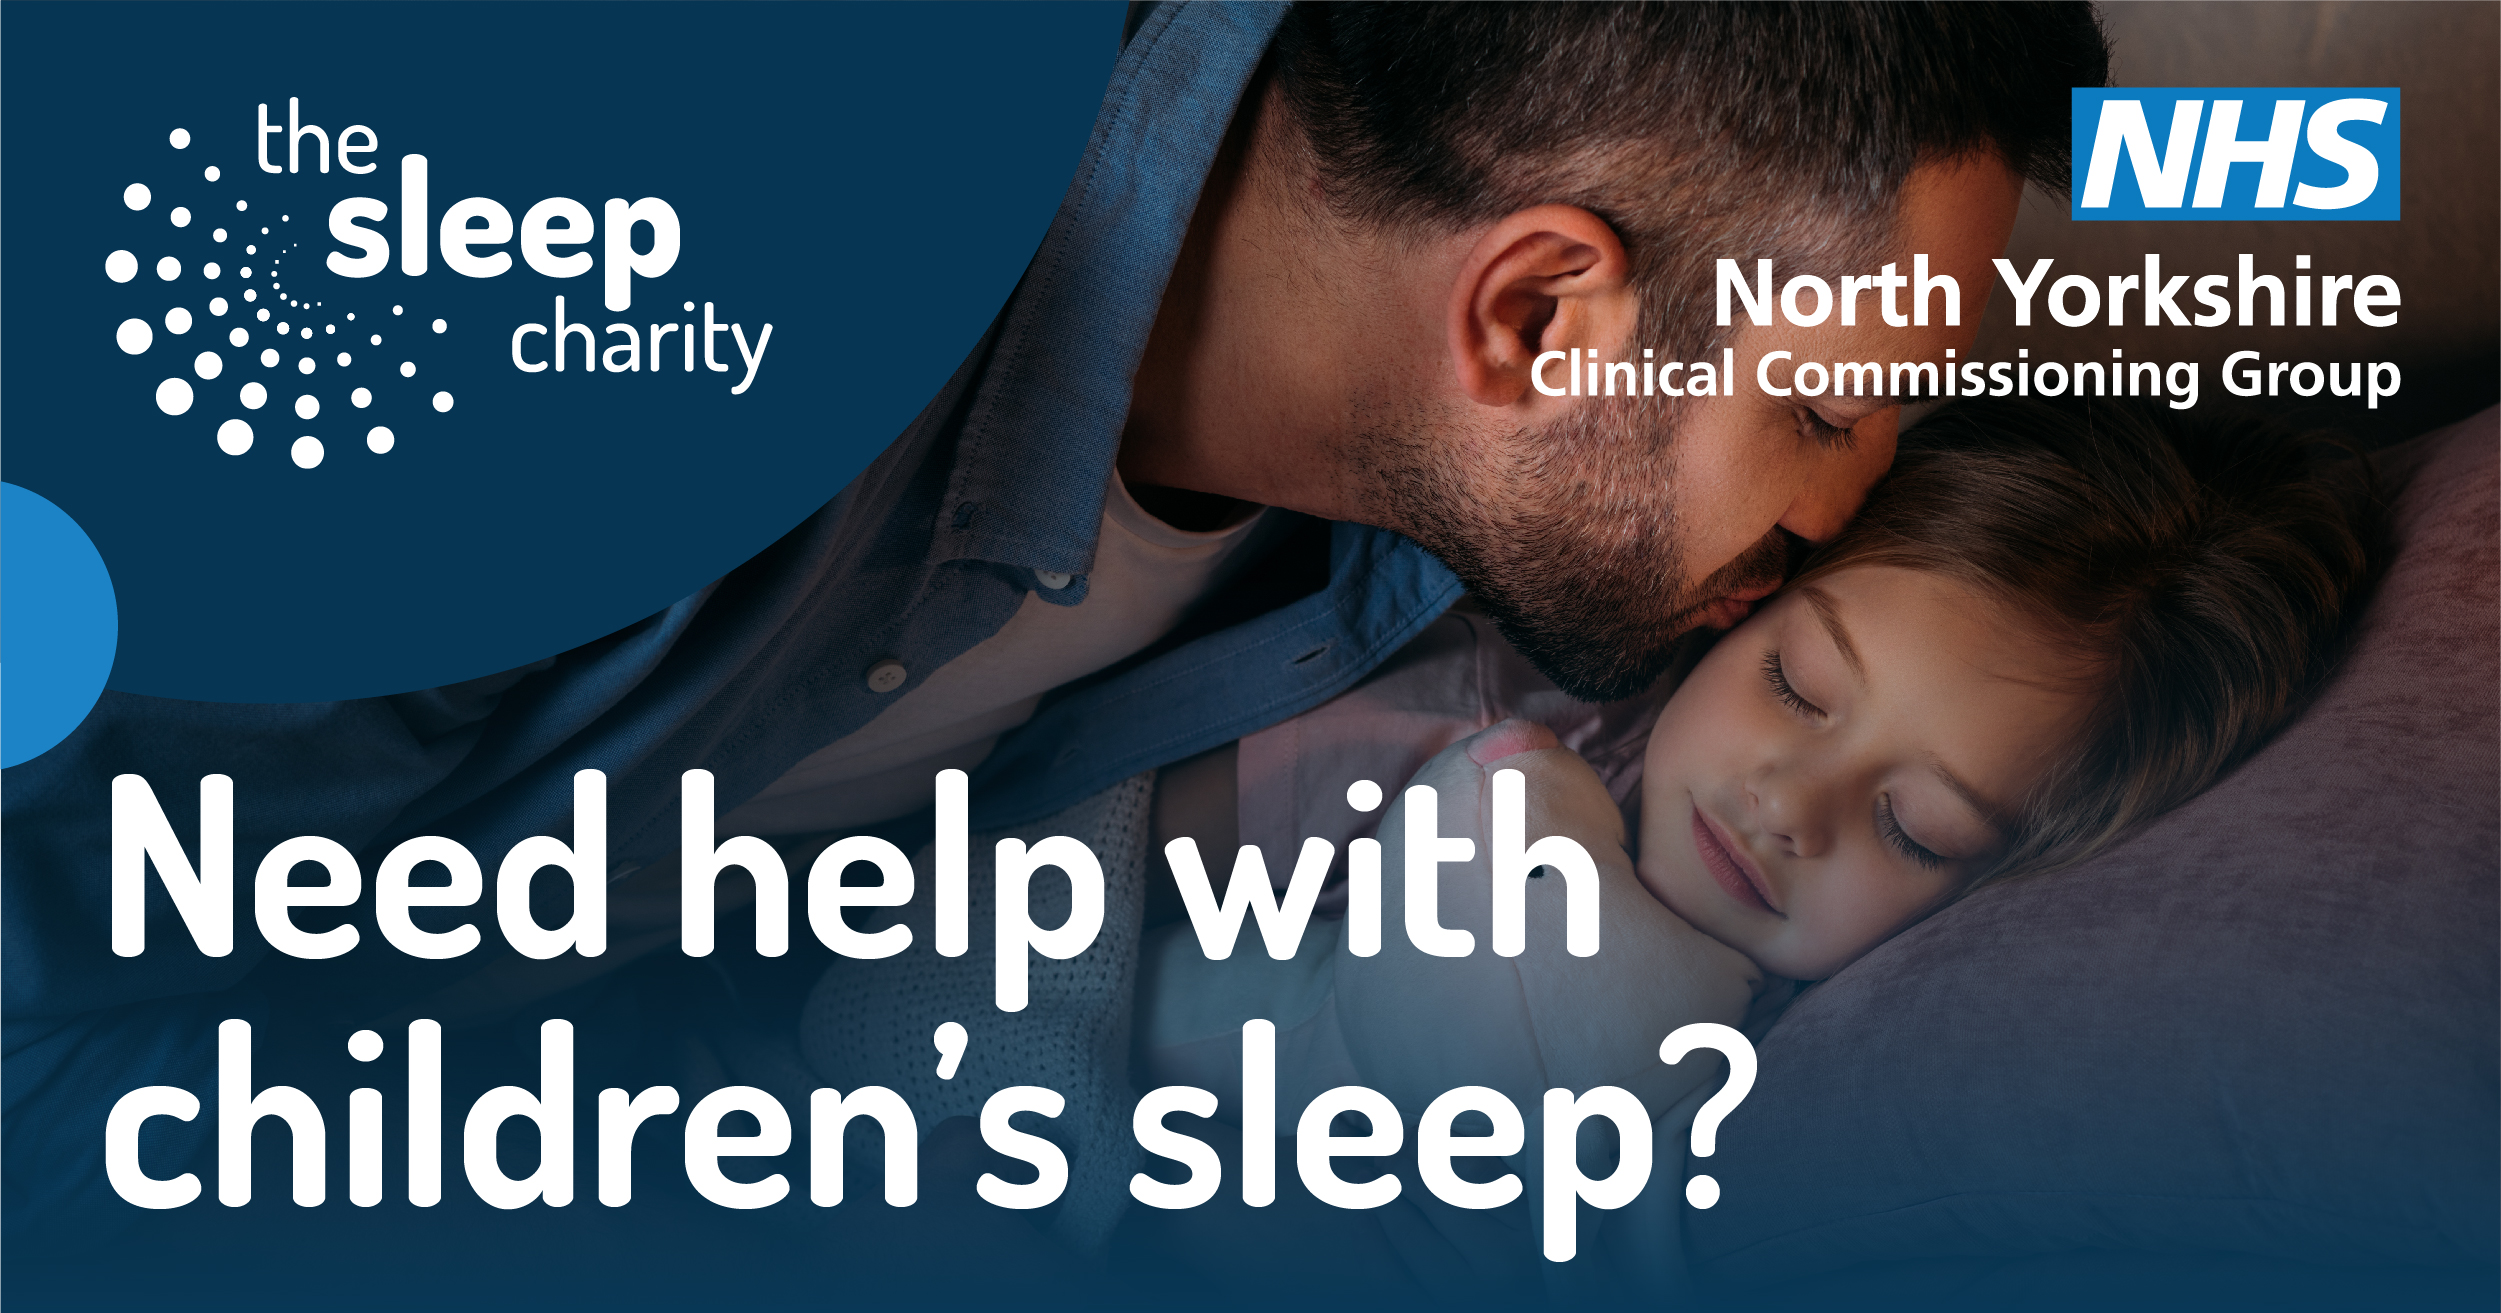 Services delivered by The Sleep Charity are now available across North Yorkshire.